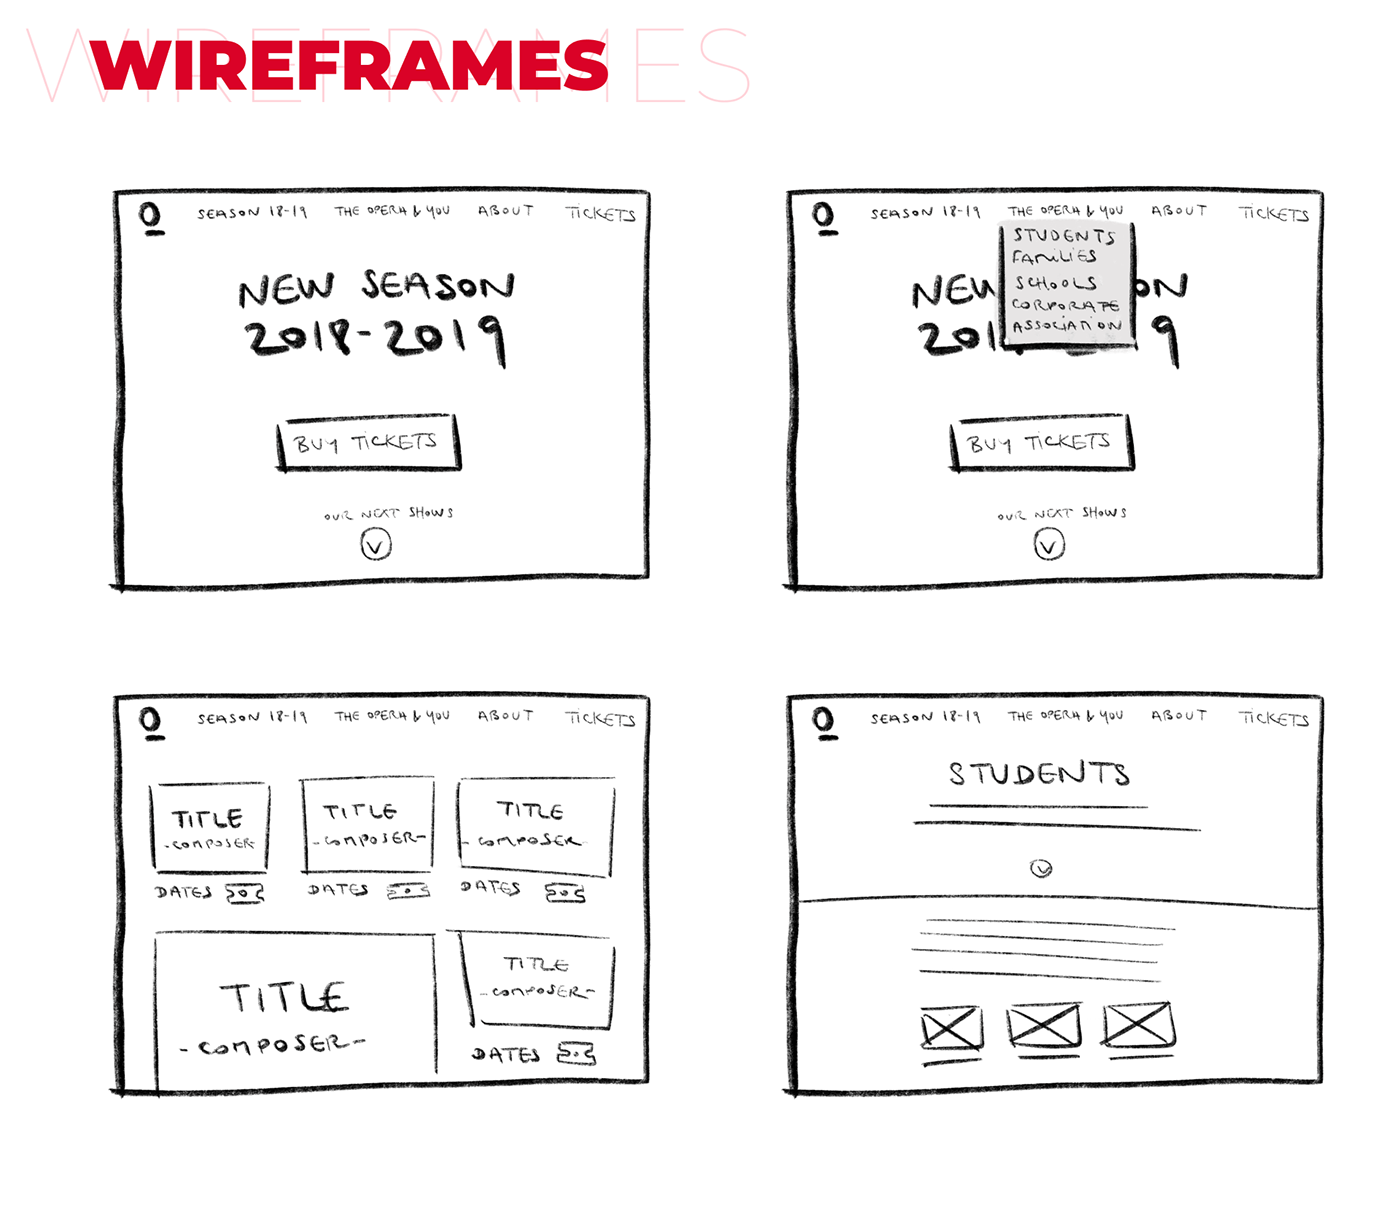 Wireframes for Opera House website